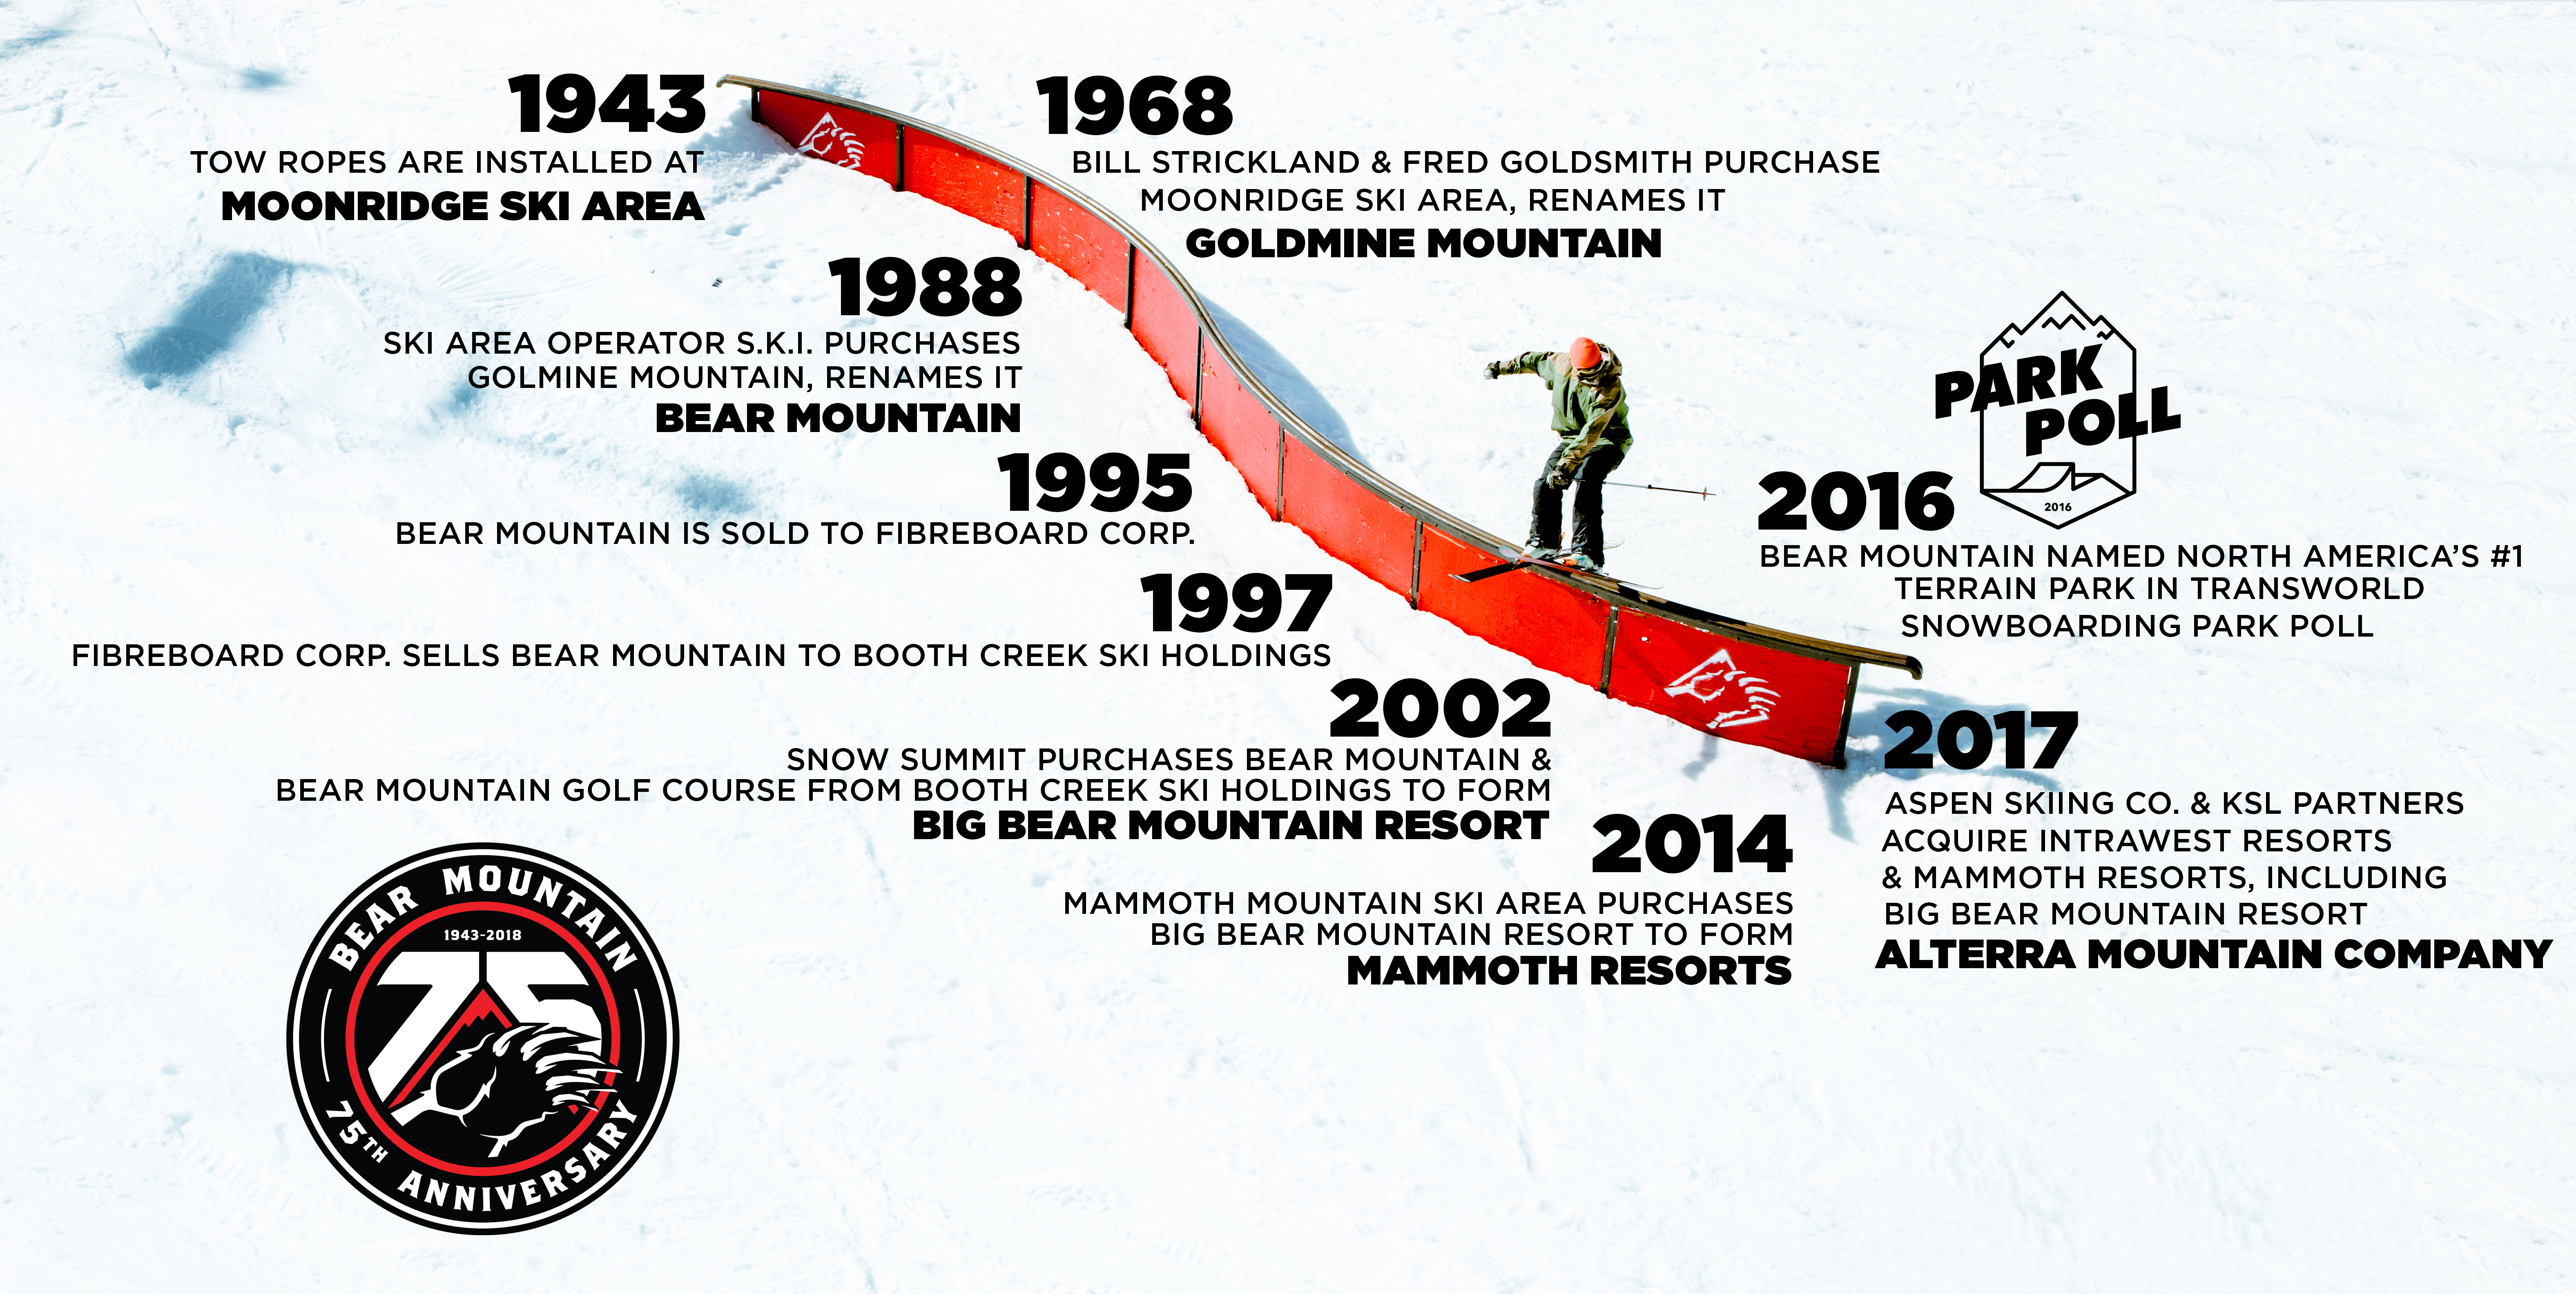 Bear Mountain's 75th Anniversary Timeline